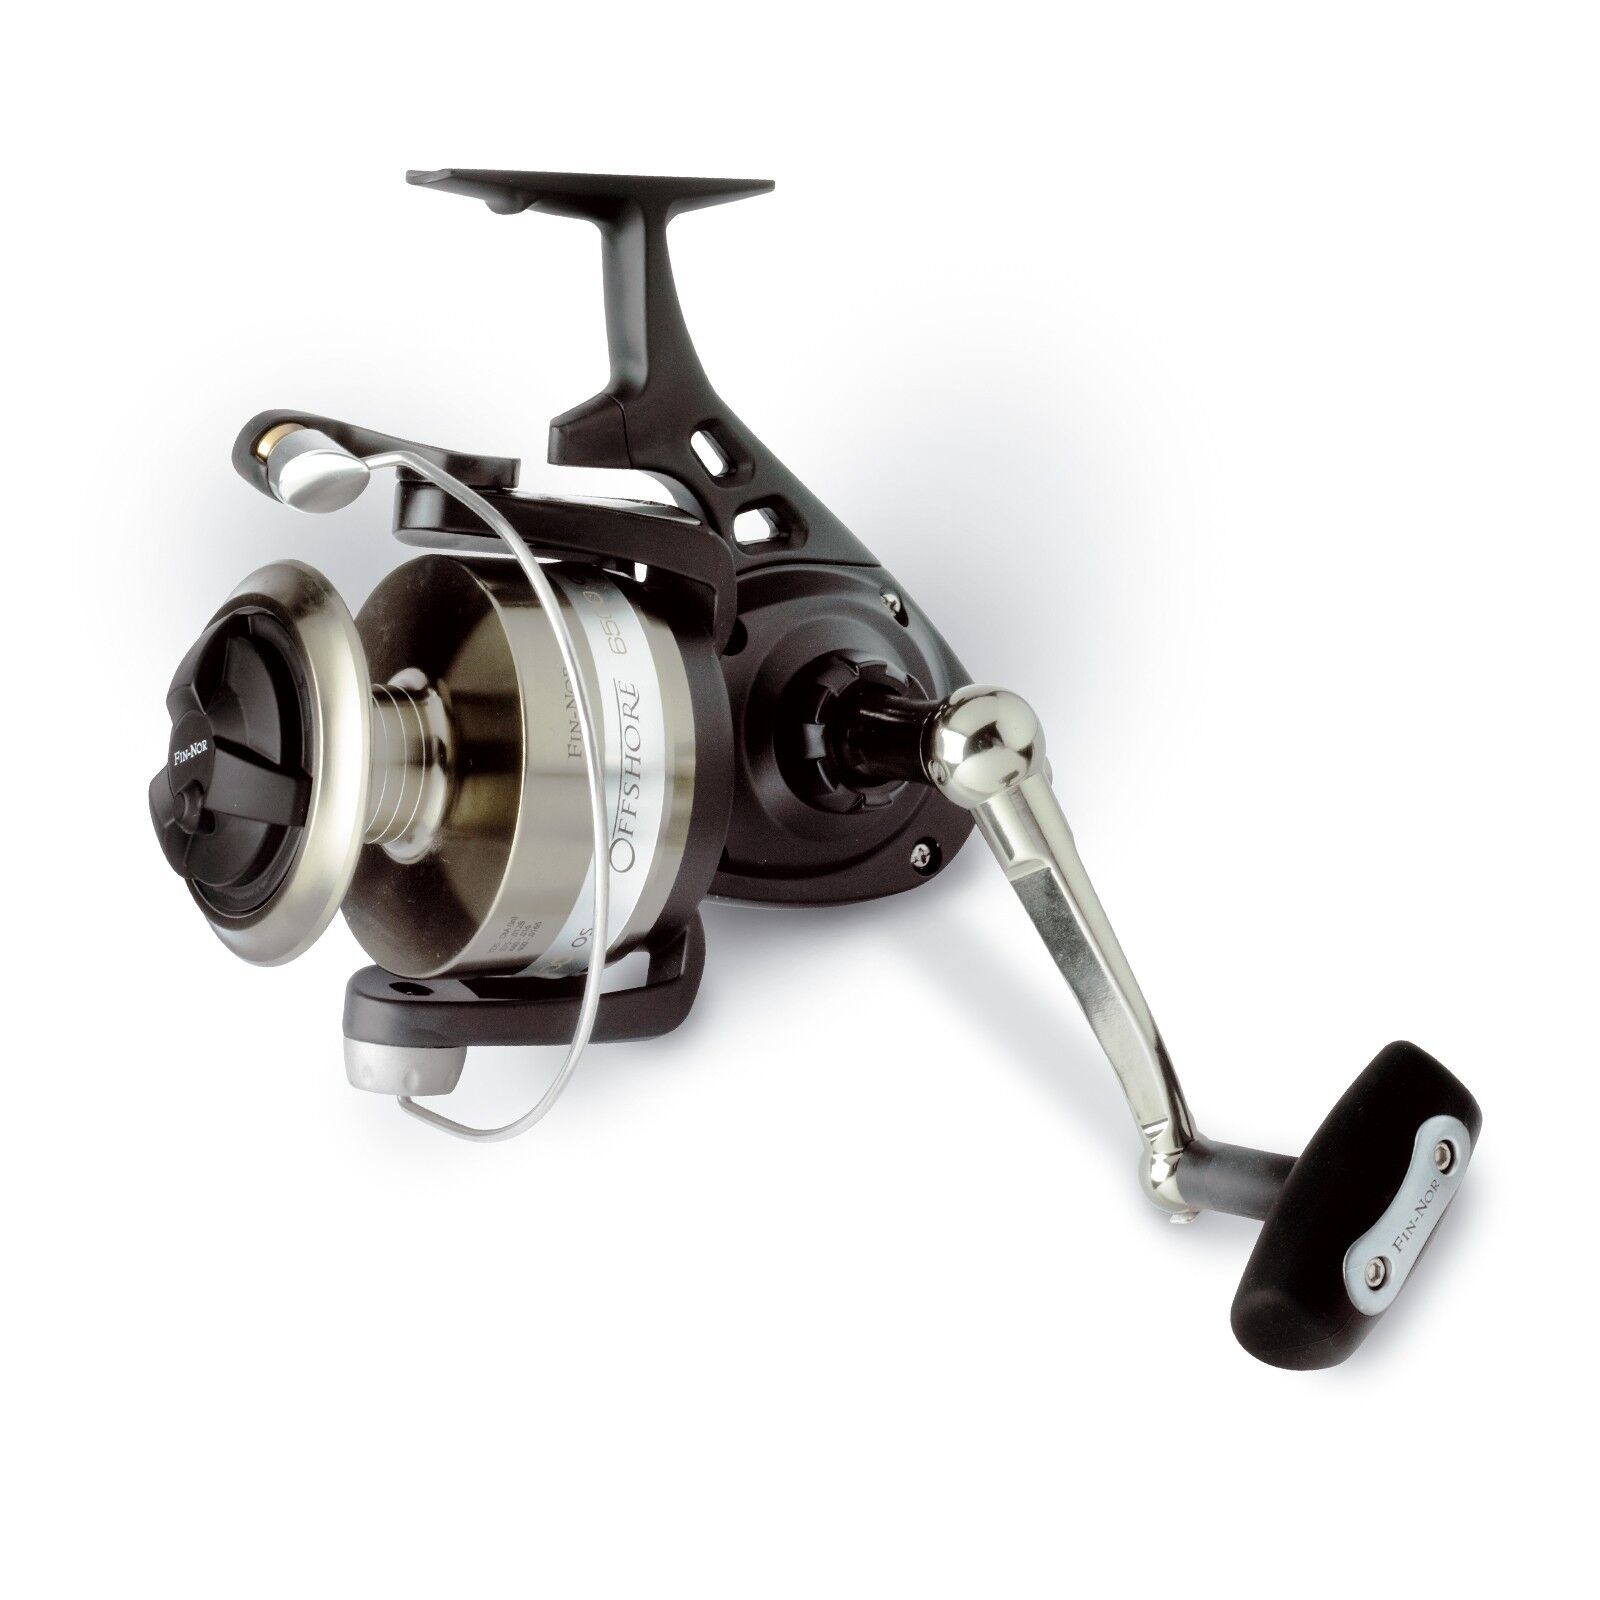 Fin-Nor Spinning Off Shore 4.4:1 Saltwater Spinning Fin-Nor Fishing Reel - OFS7500A 8c4aeb